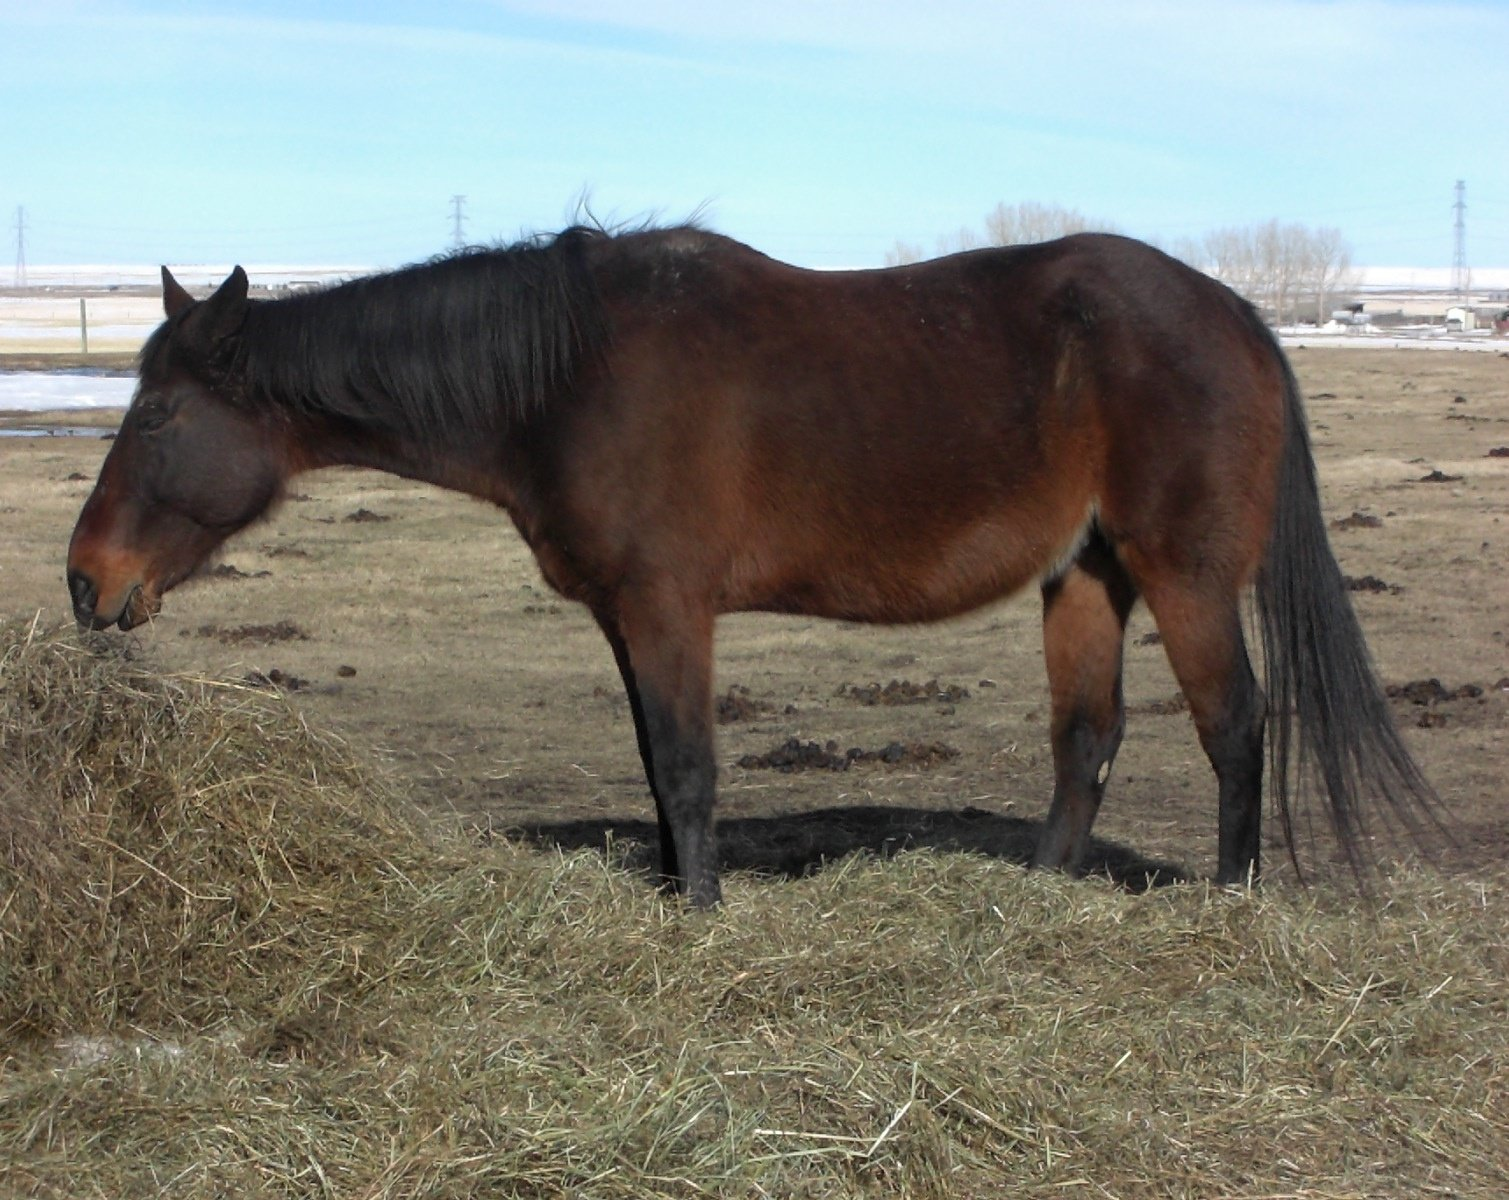 ANNIE - April 2016. Annie was raced and then used as a broodmare for years. It took a toll on her body, and at 19 yrs old, her body started shutting down. Her owner made the hard decision to have her put to sleep.